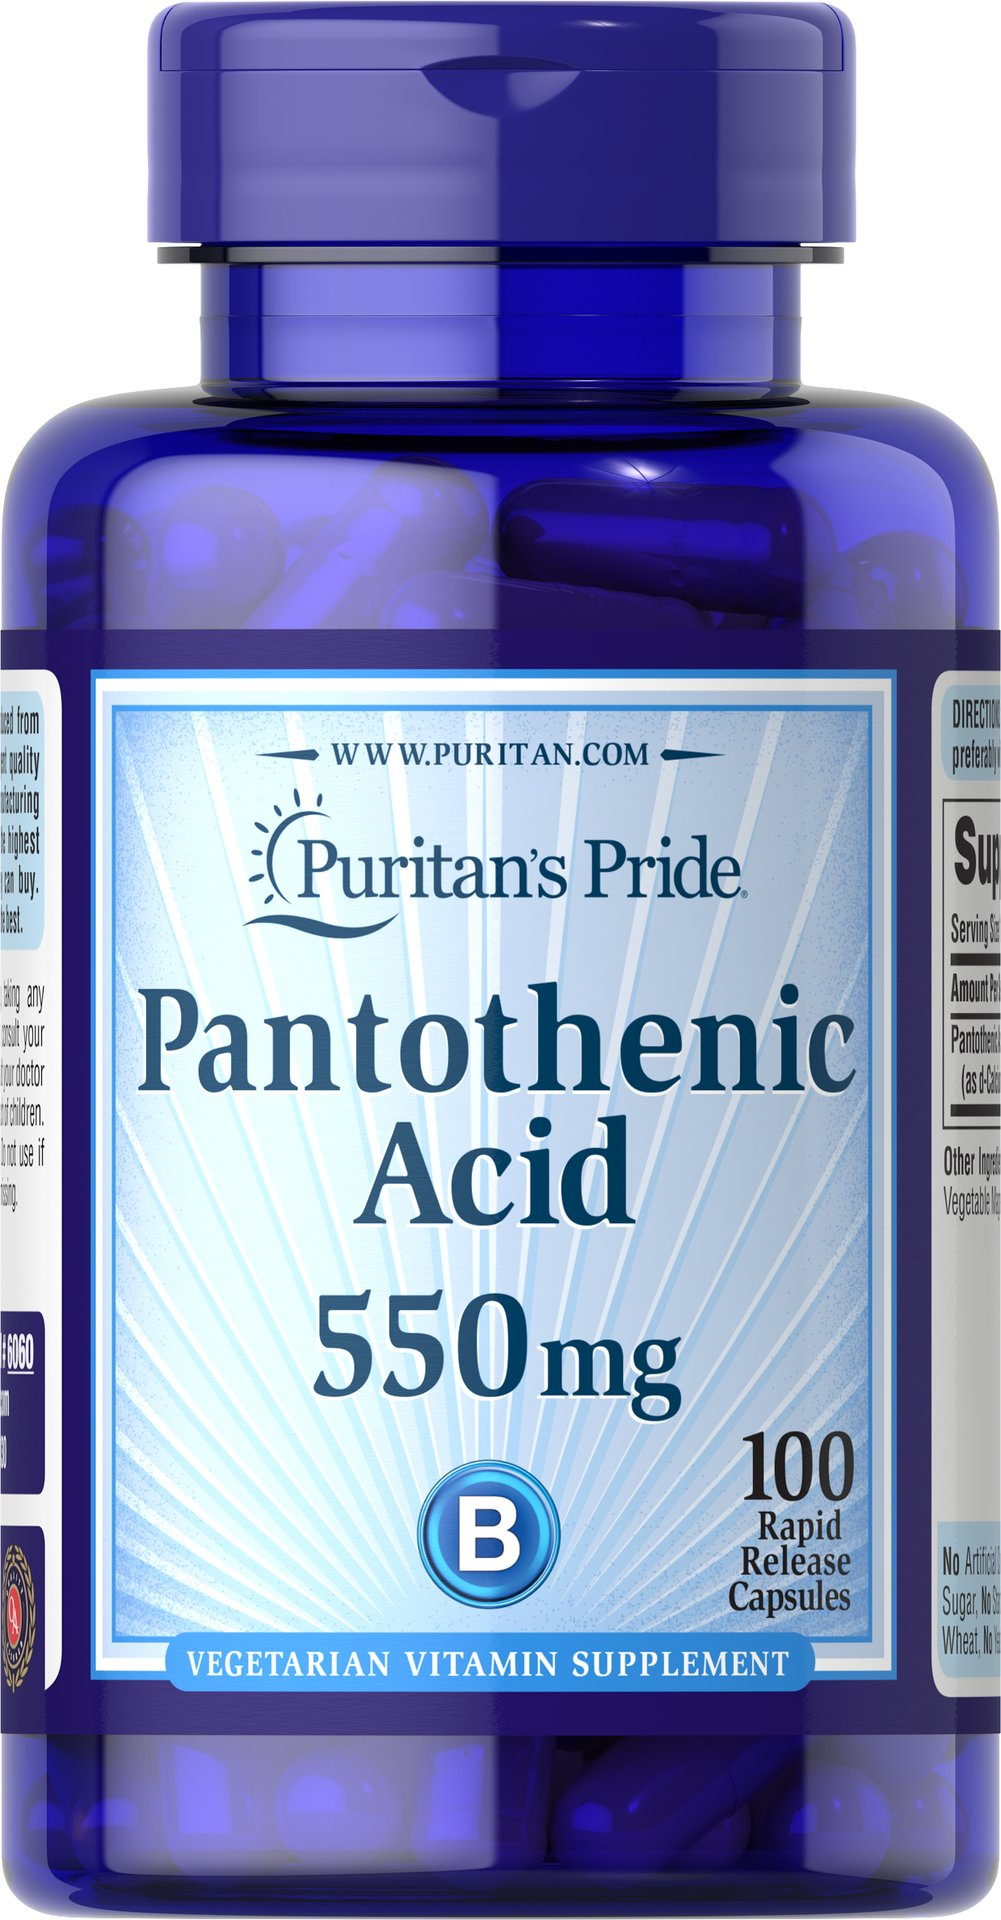 Pantothenic Acid 500 mg Timed Release <p>Pantothenic Acid is needed for normal functioning of the gastrointestinal tract and is required by all of the cells in the body.**  It also helps convert fats, carbohydrates, and proteins into energy.**  Available in (100 mg) & (200 mg) tablets.  Also available in (500 mg) TIME RELEASE Tablets.</p> 100 Tablets 500 mg $9.99